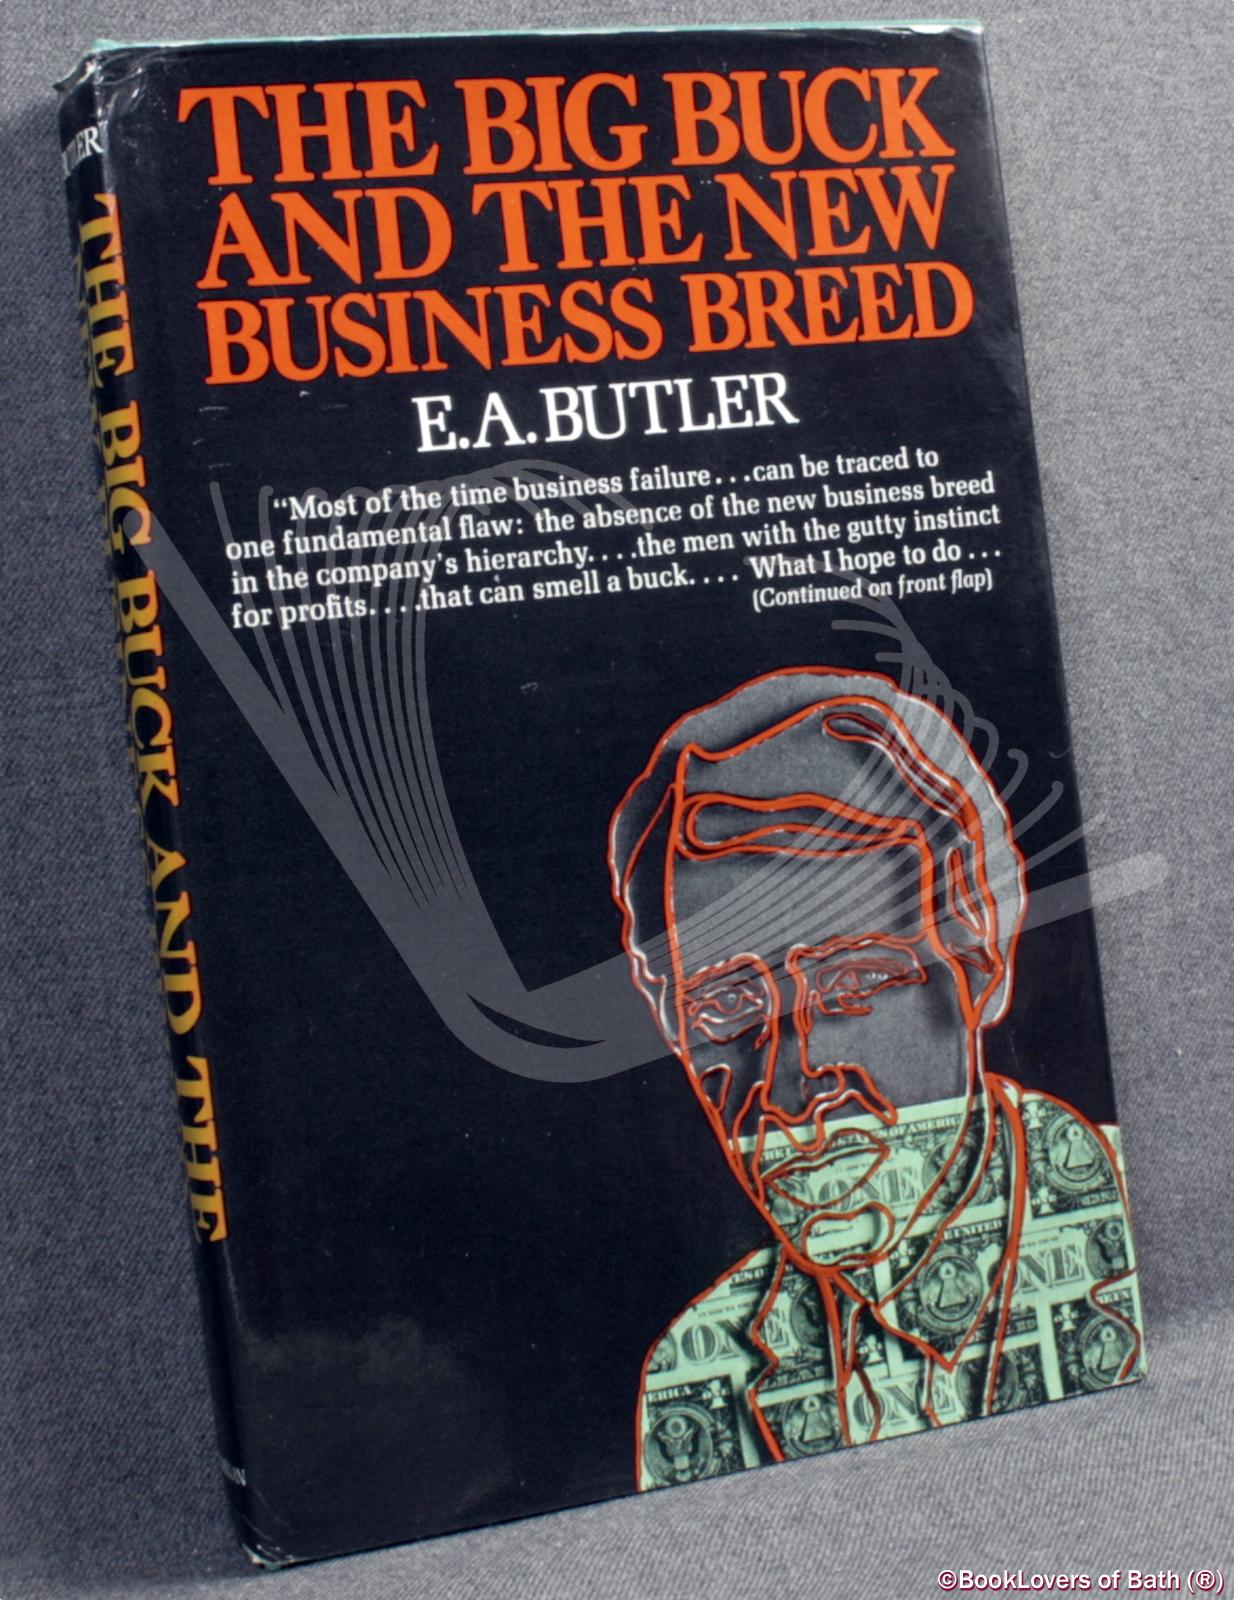 The Big Buck And The New Business Breed - E.A. Butler